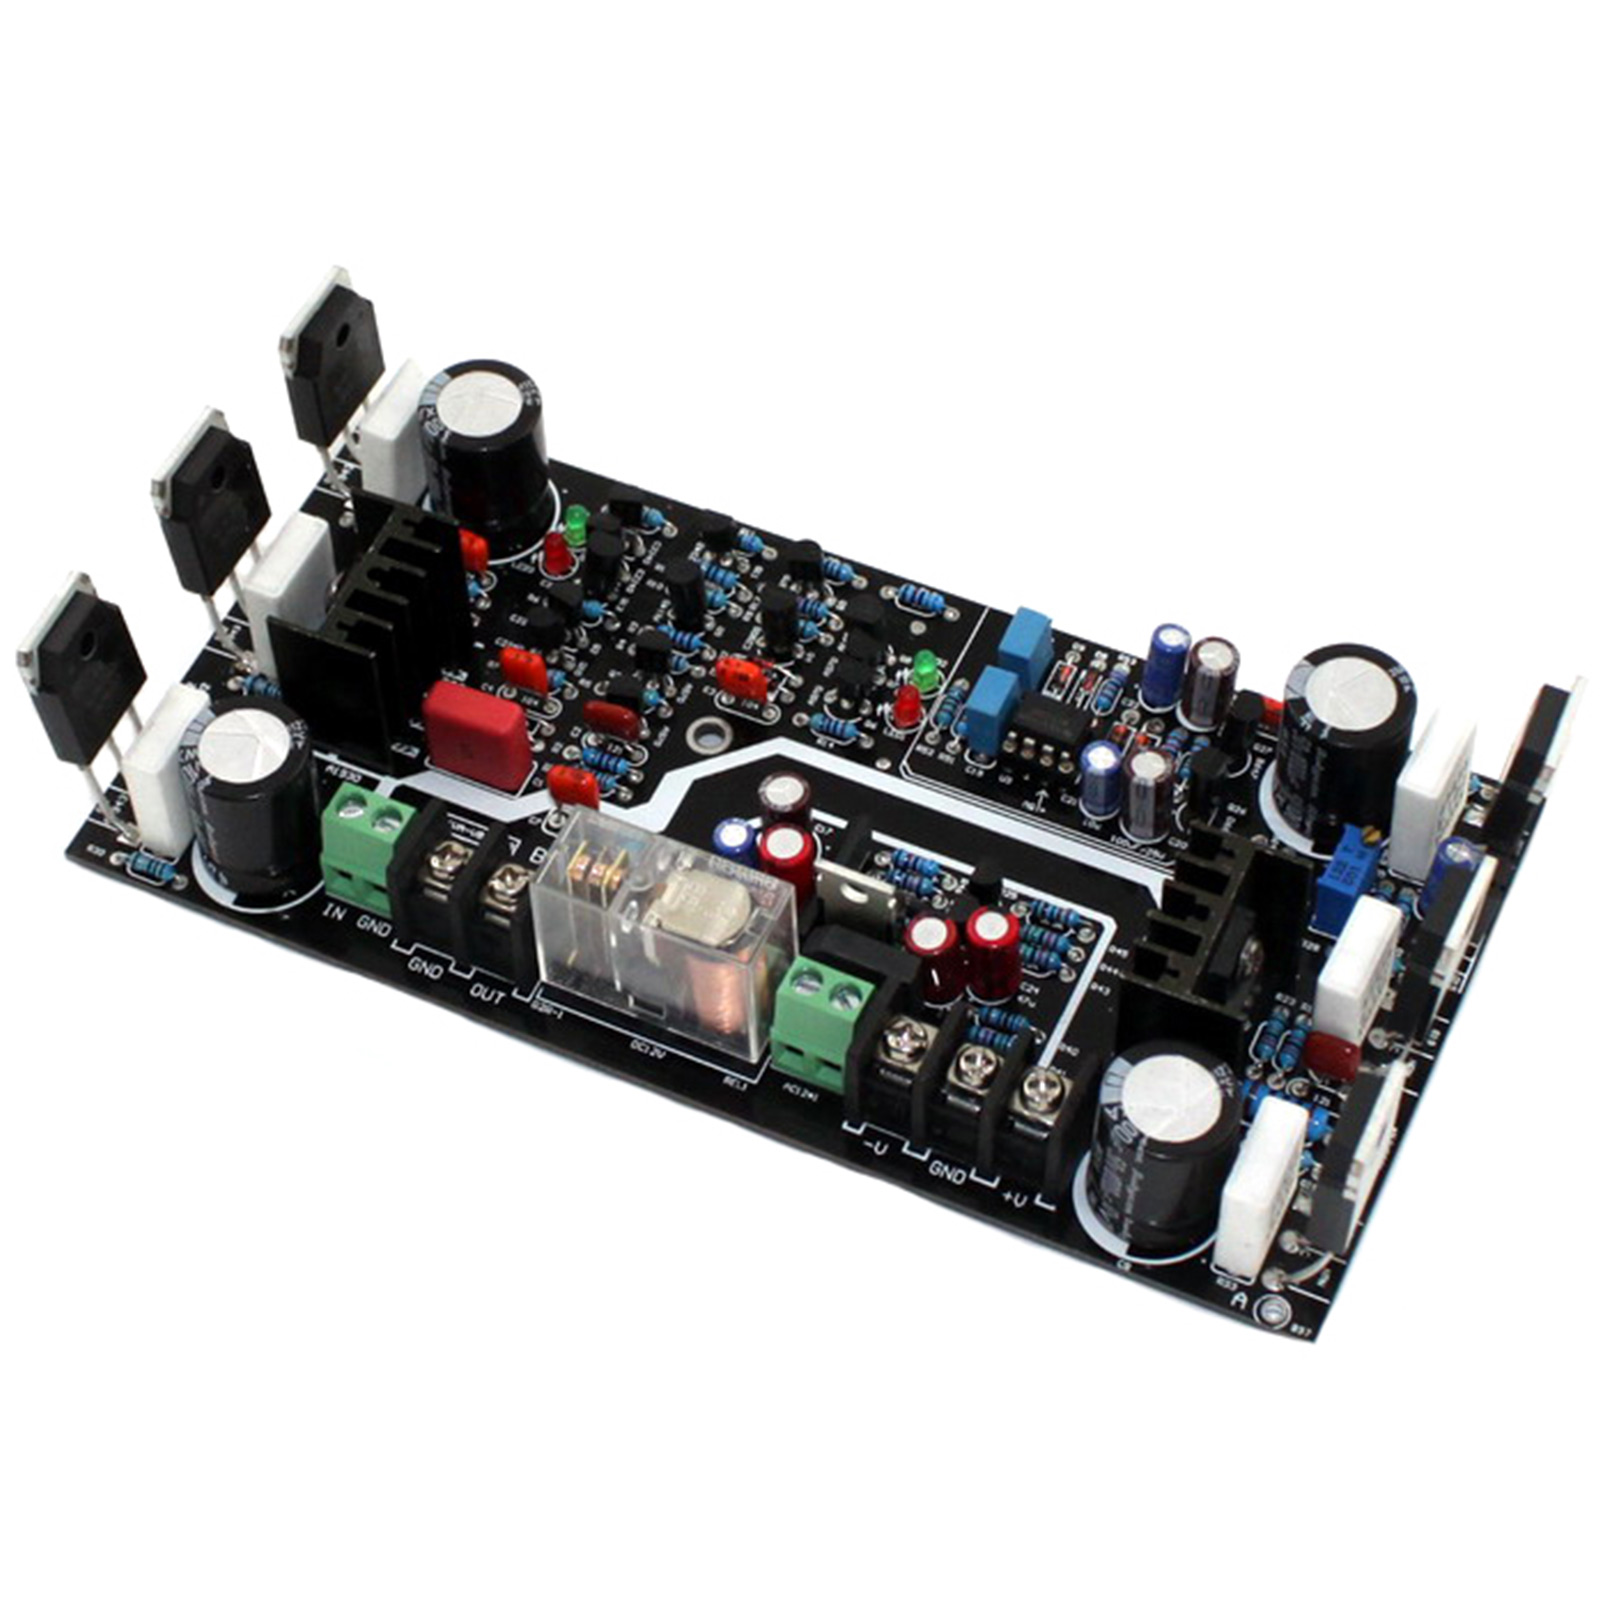 Assembled Marantz MA 9S2 250W NJW0281 NJW0302 2SA1930 2SC5171 with DC Servo Amplifier Board in Amplifier from Consumer Electronics